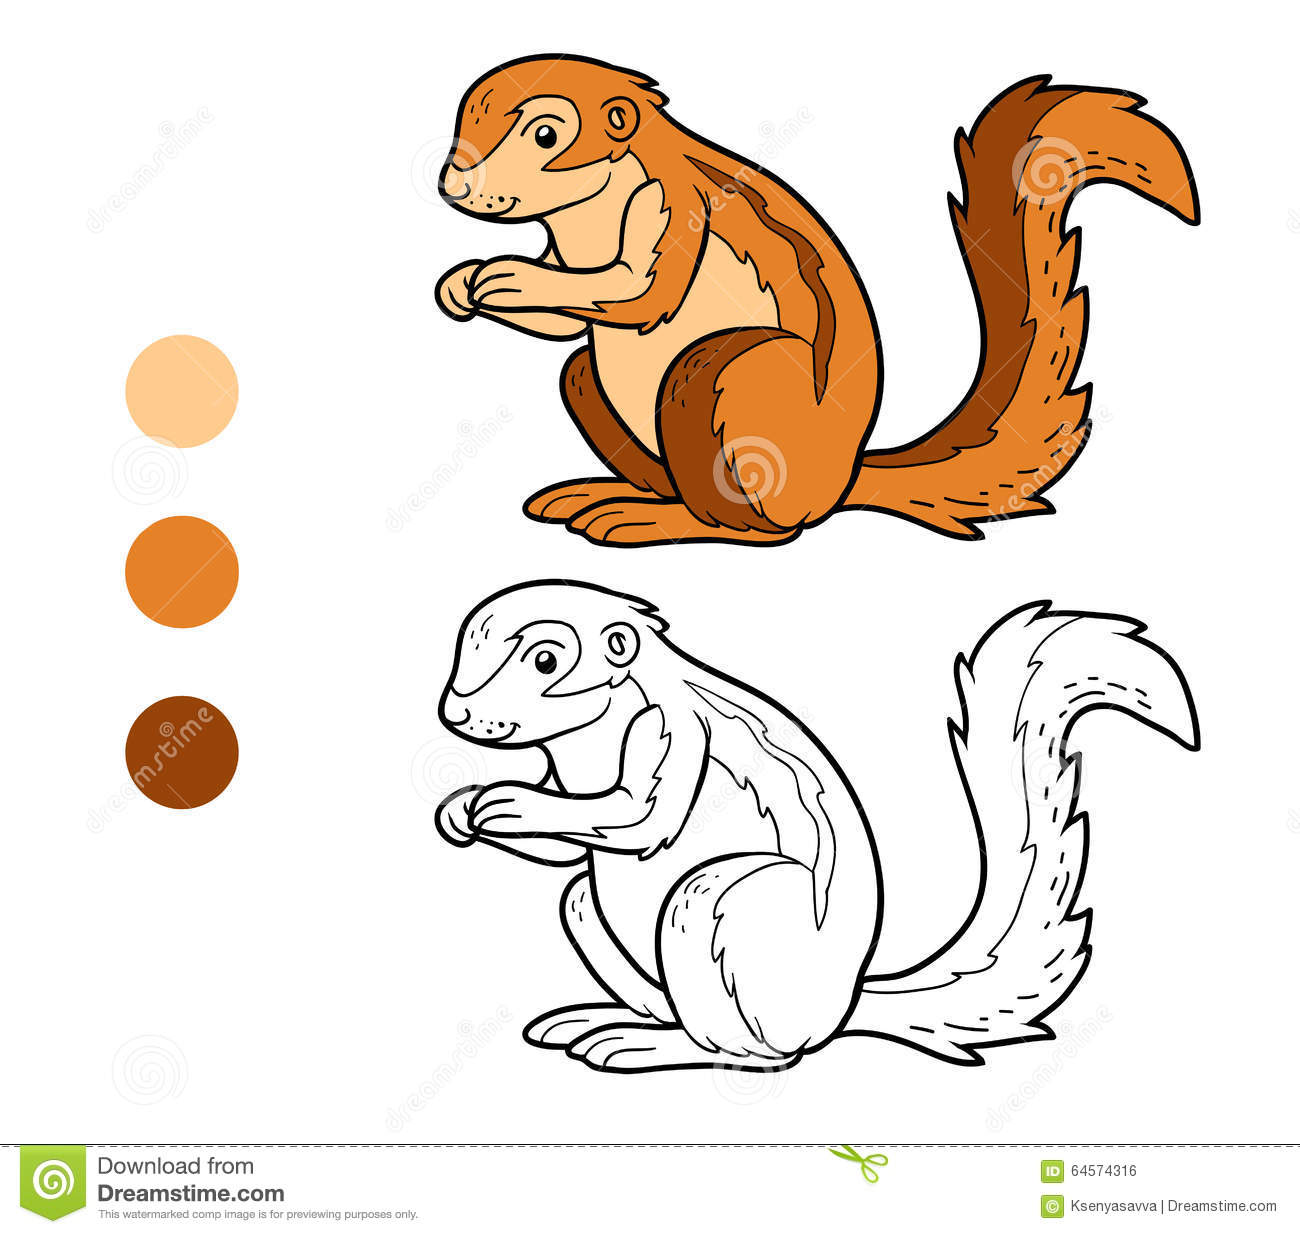 xerus squirrel coloring pages - photo #5